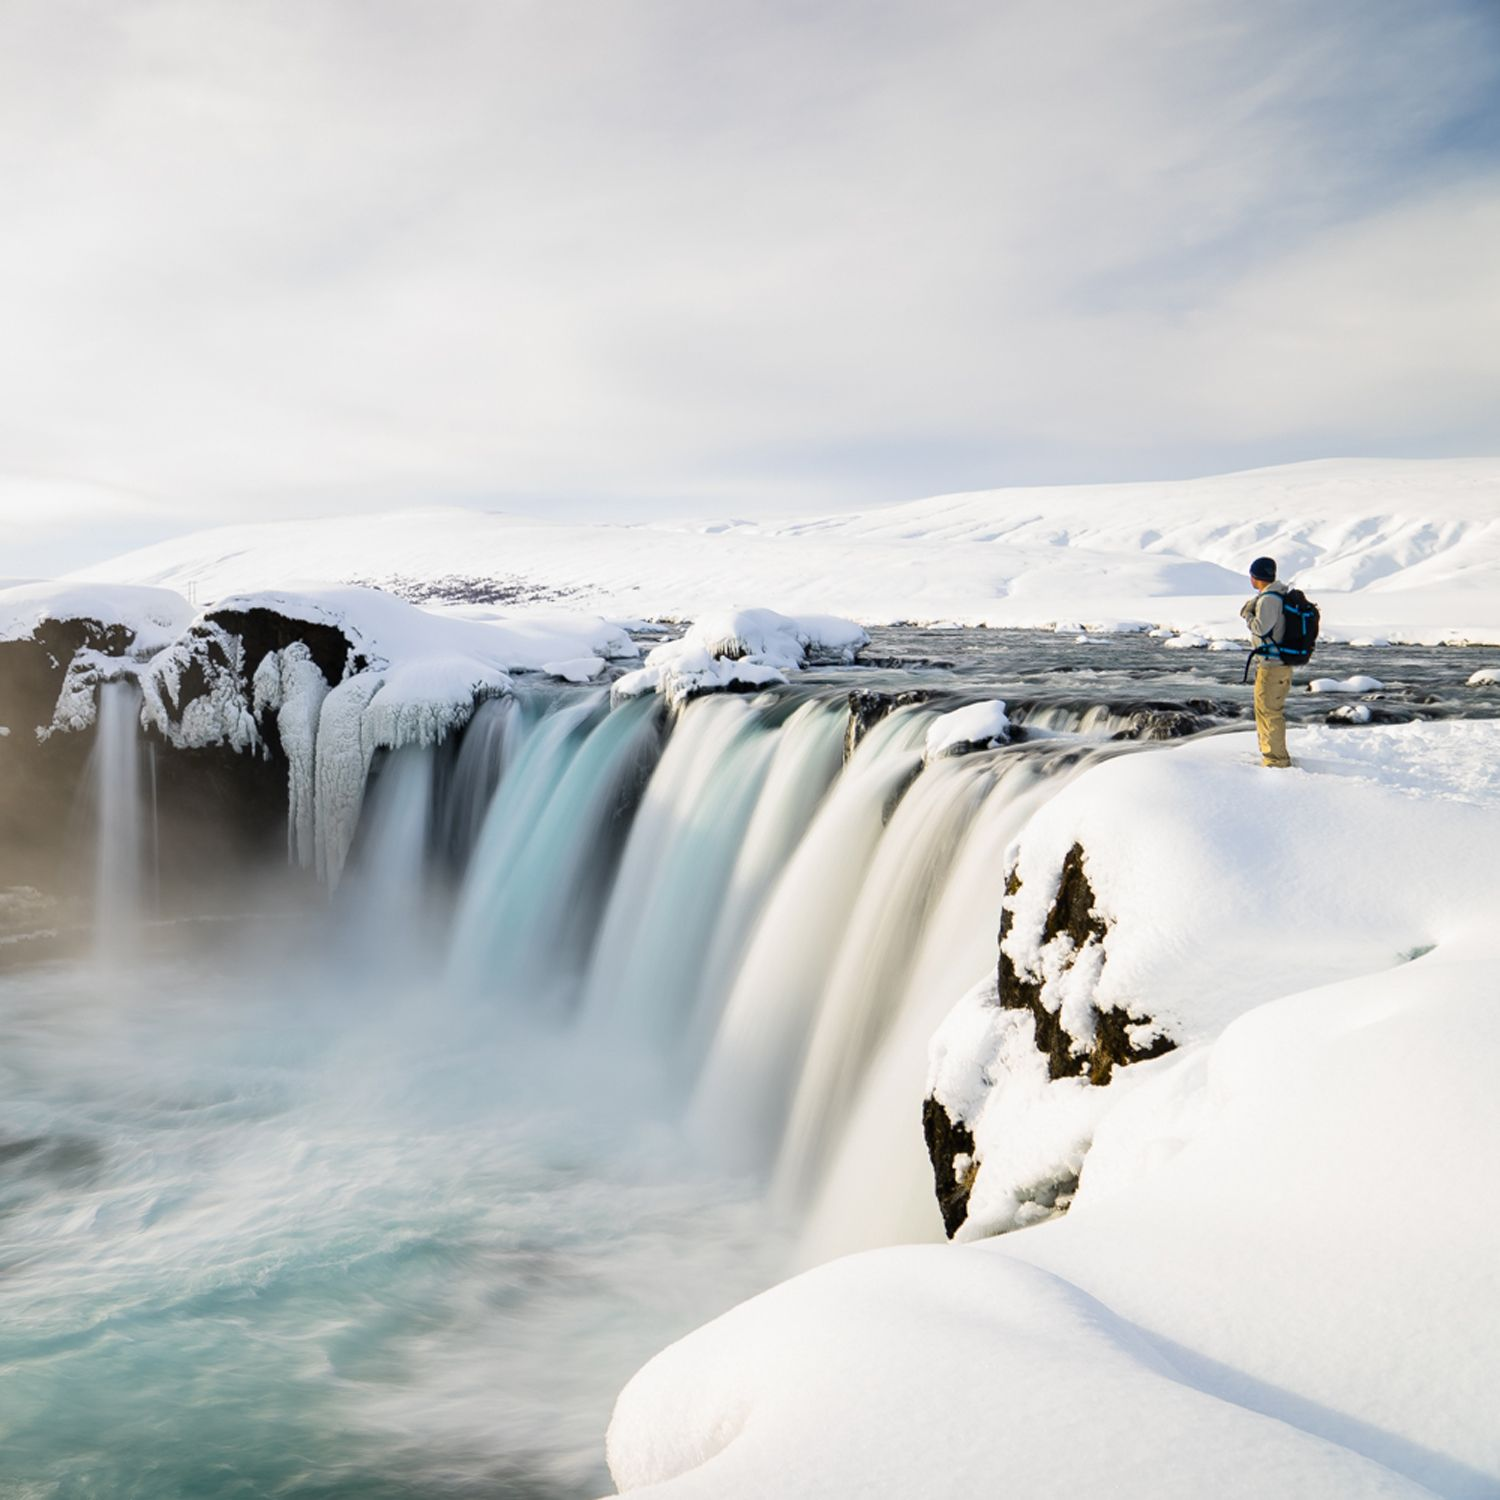 The falls drop more than 30 feet in places. Photo: Chris Burkard